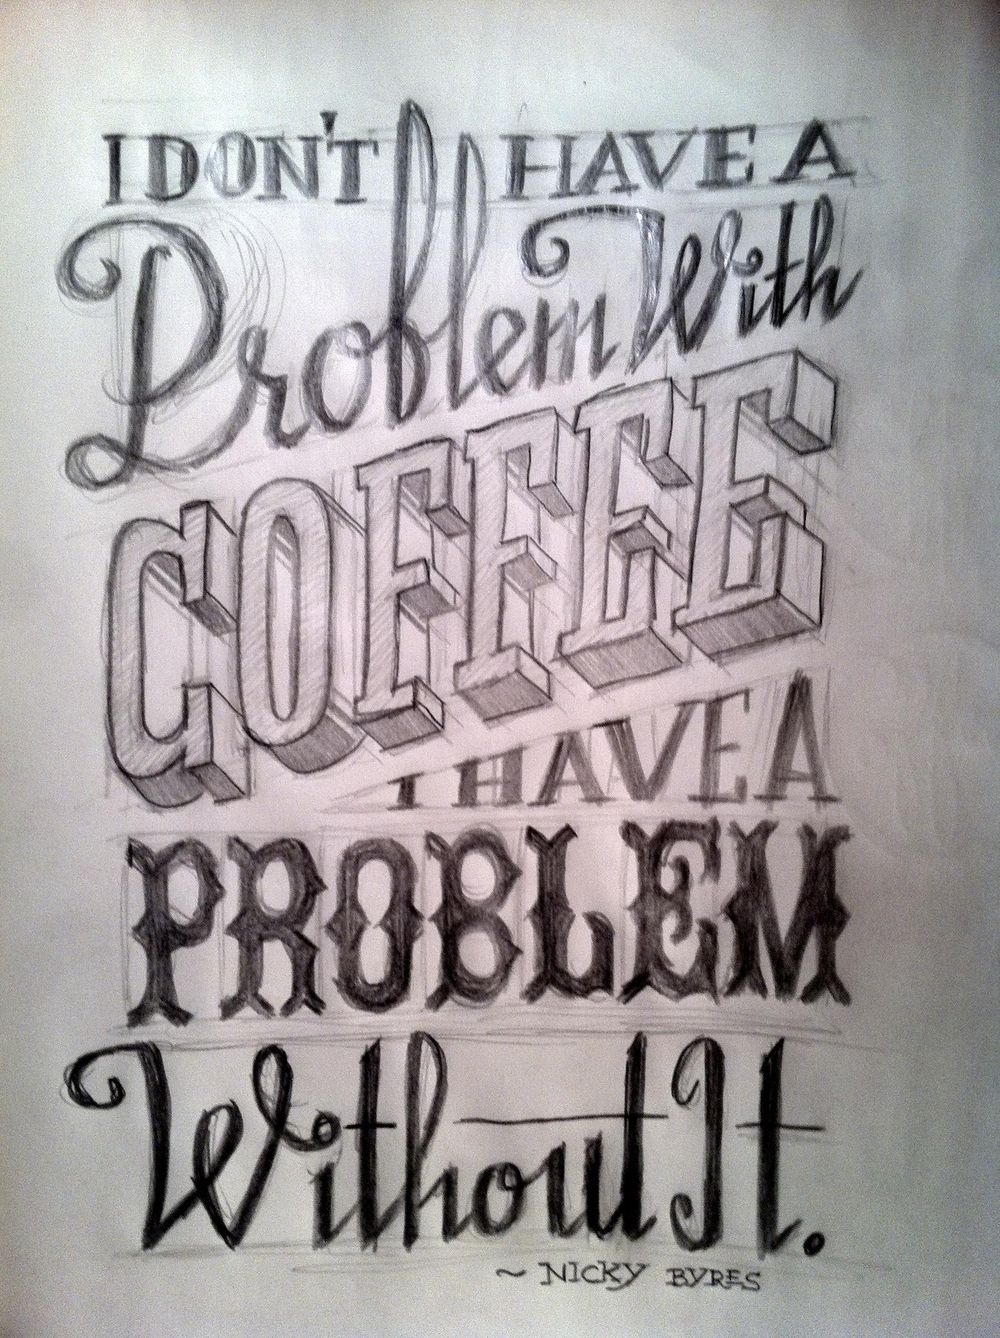 I Don't Have A Problem With Coffee, I Have One Without It - image 6 - student project